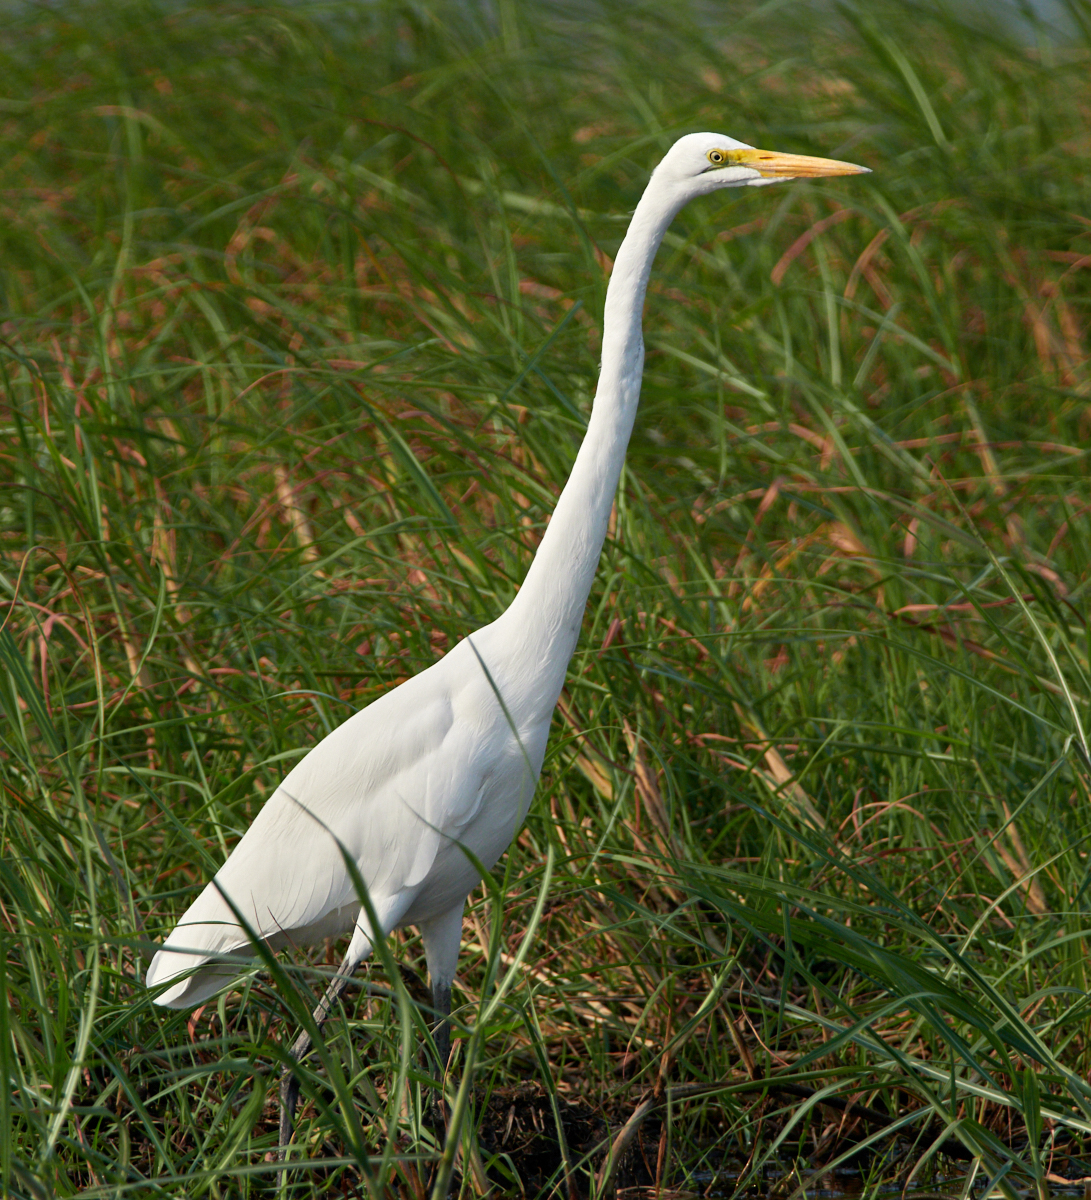 Great White Egret 1600x1200 sRGB.jpg